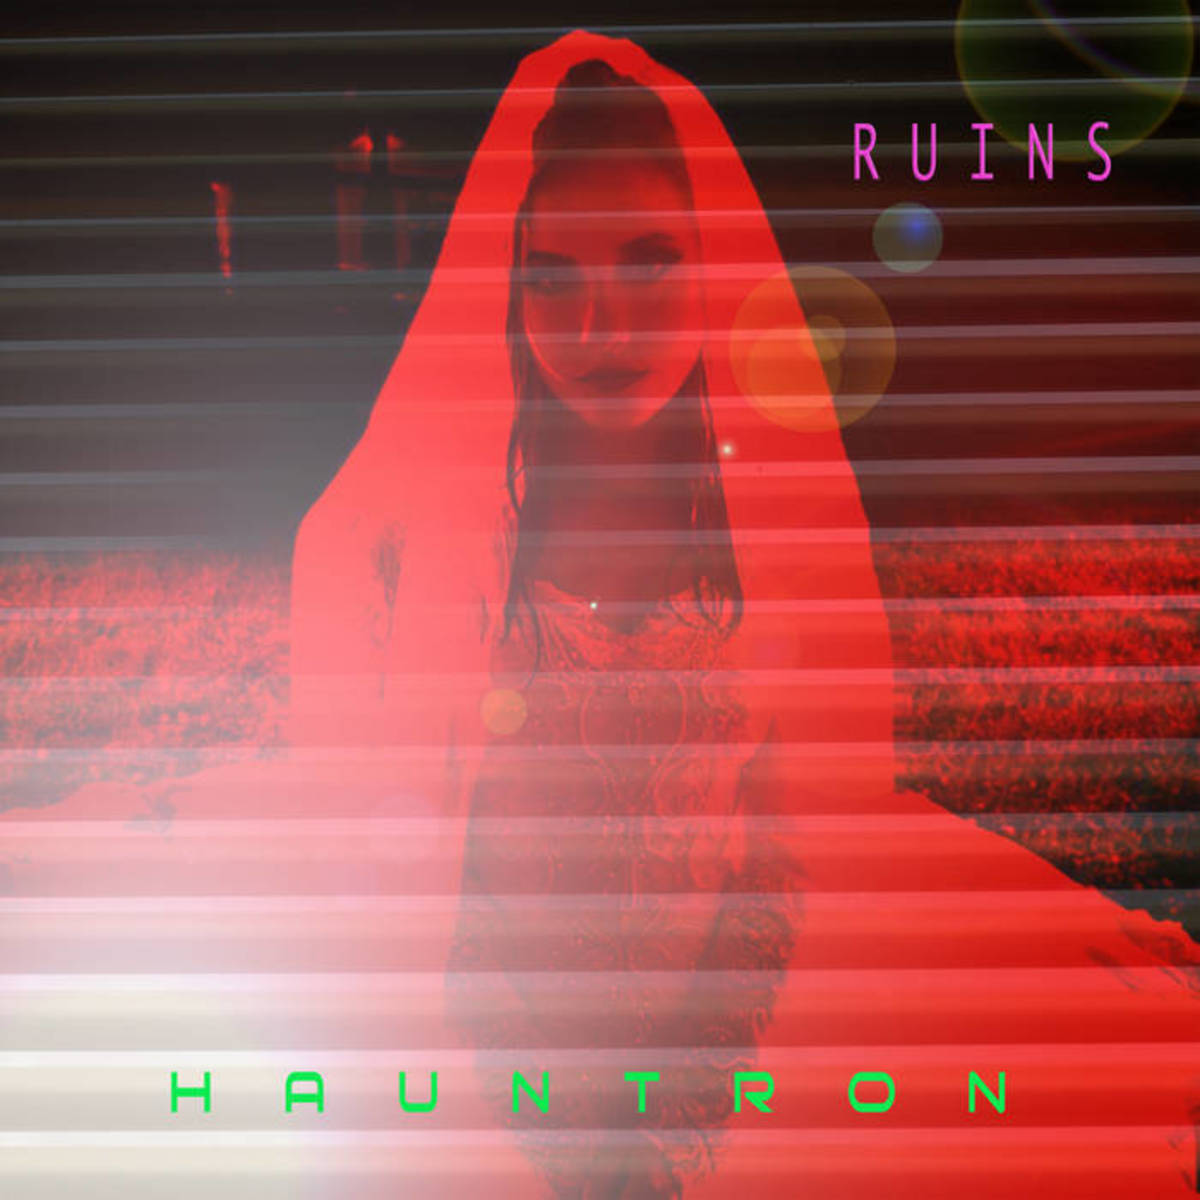 synth-album-review-ruins-by-hauntron-and-sav